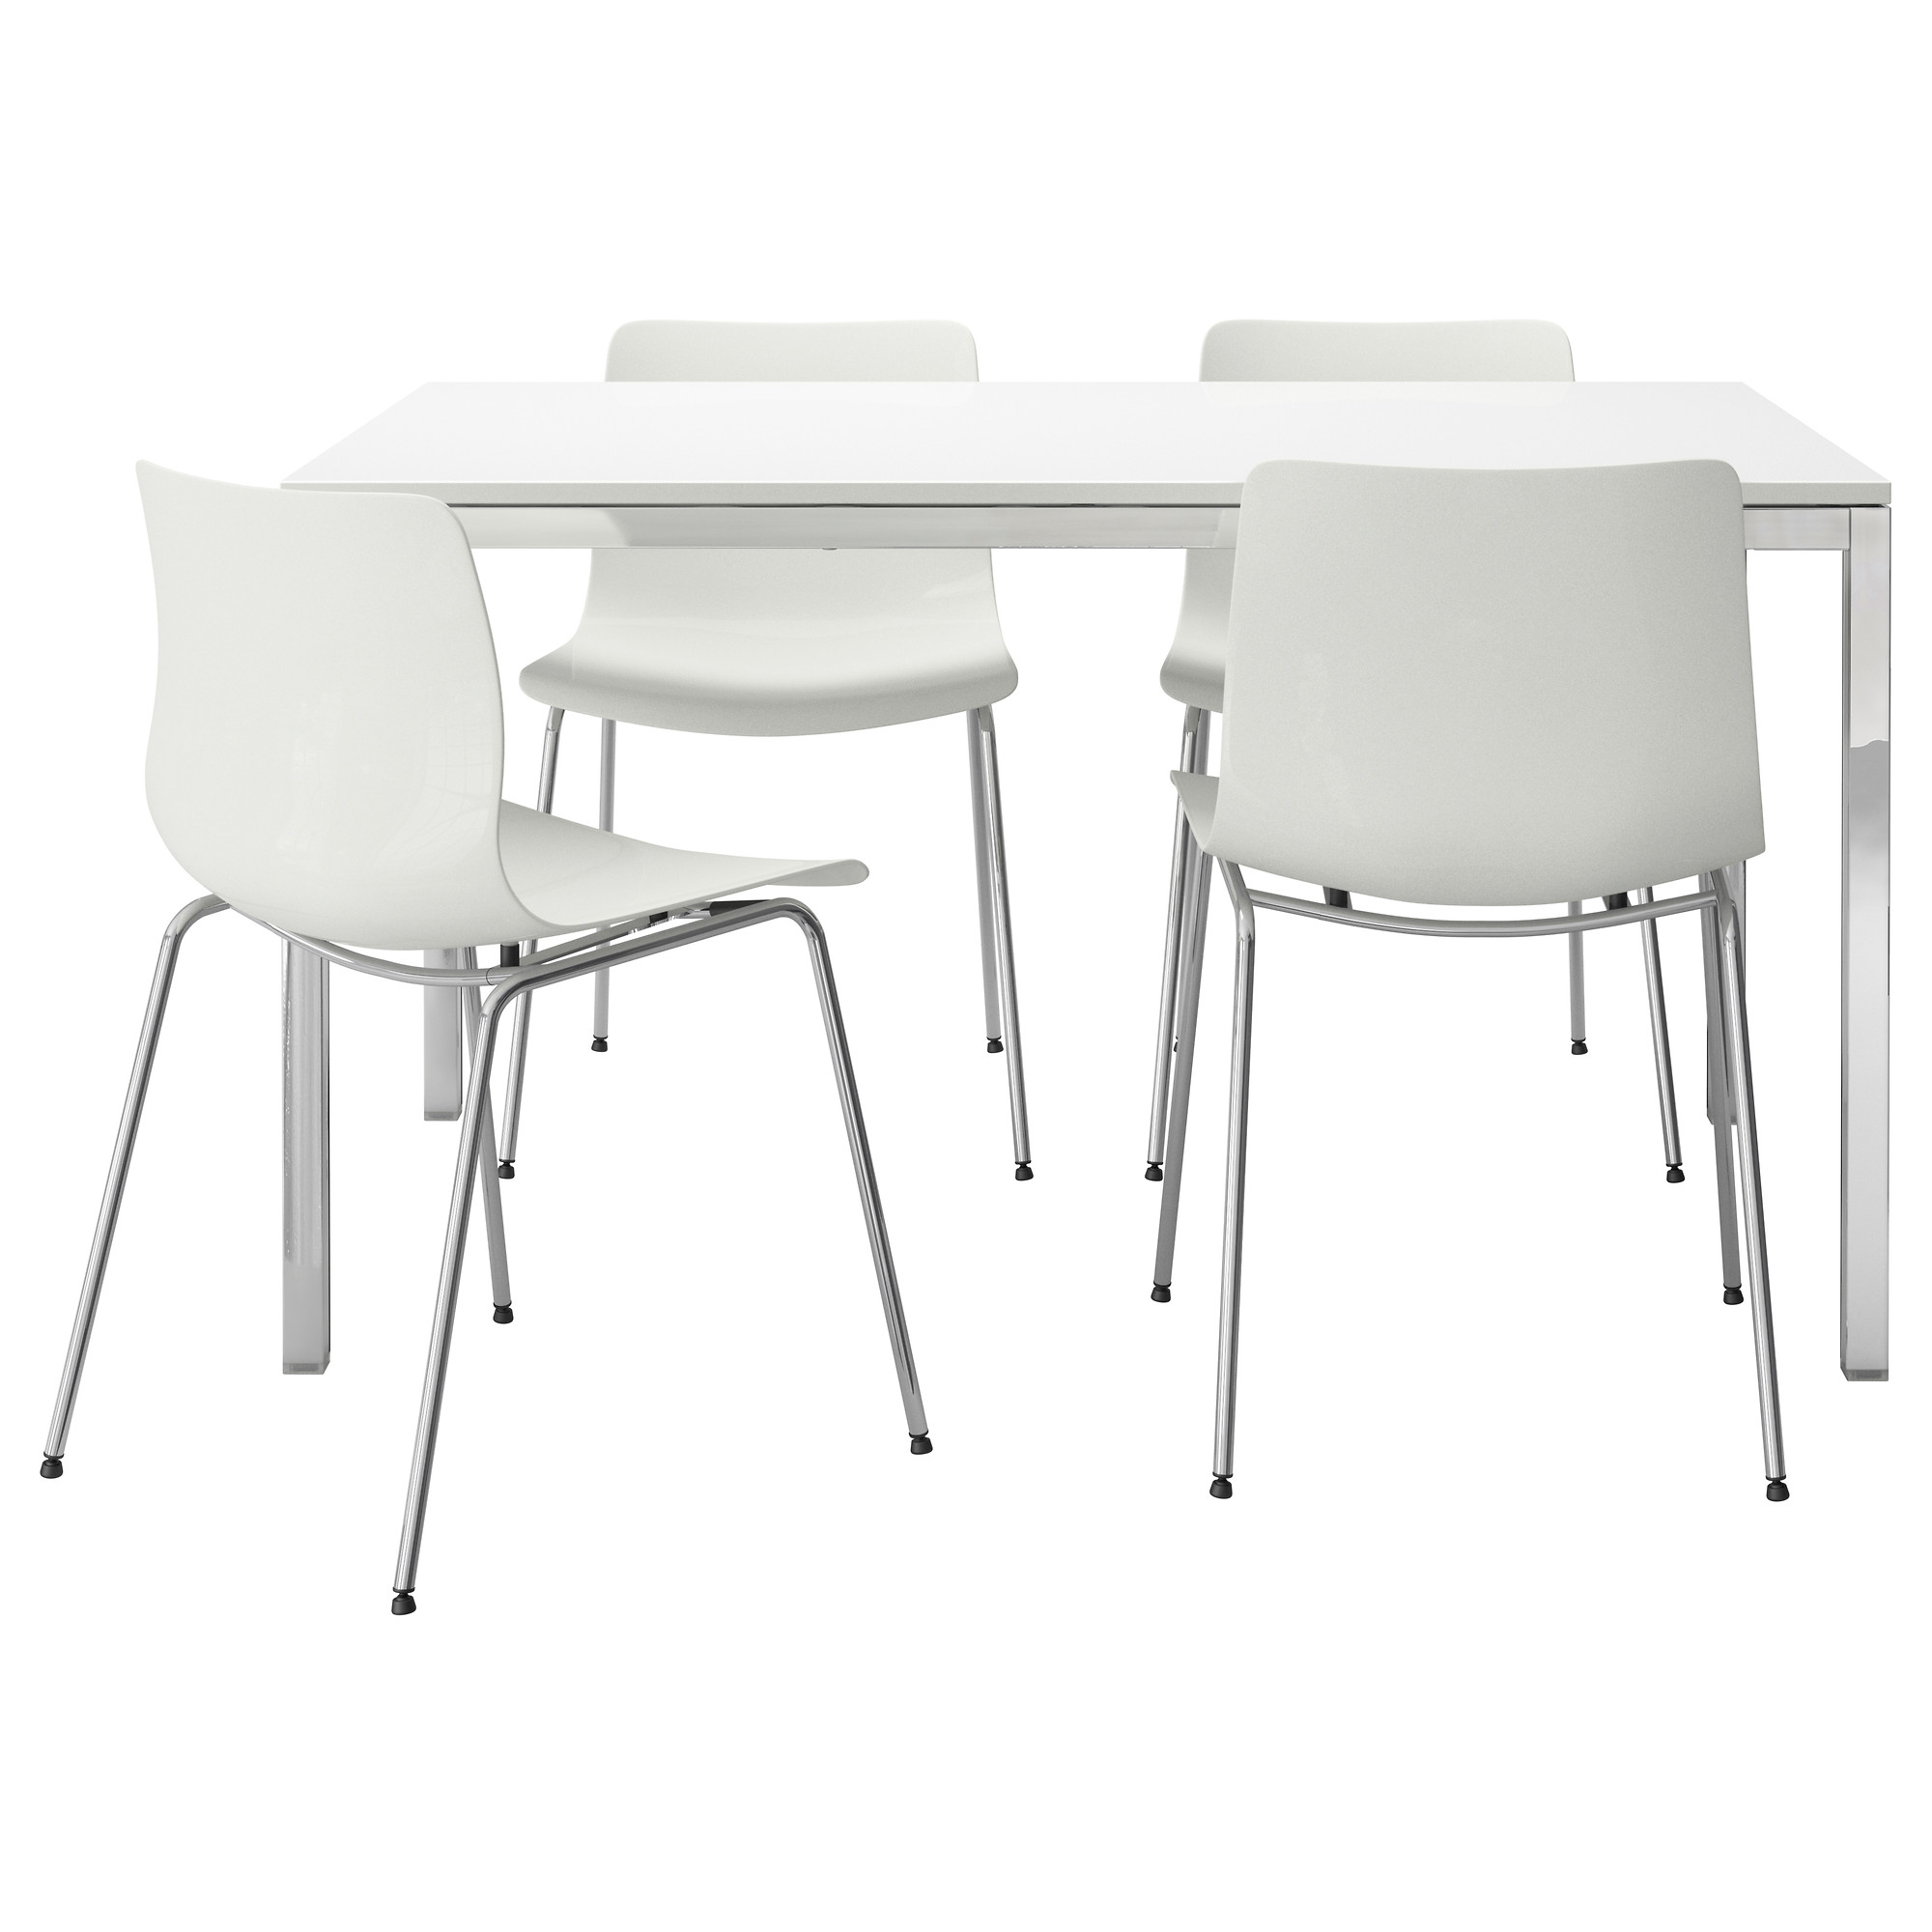 Retro Aluminum Kitchen Chairs